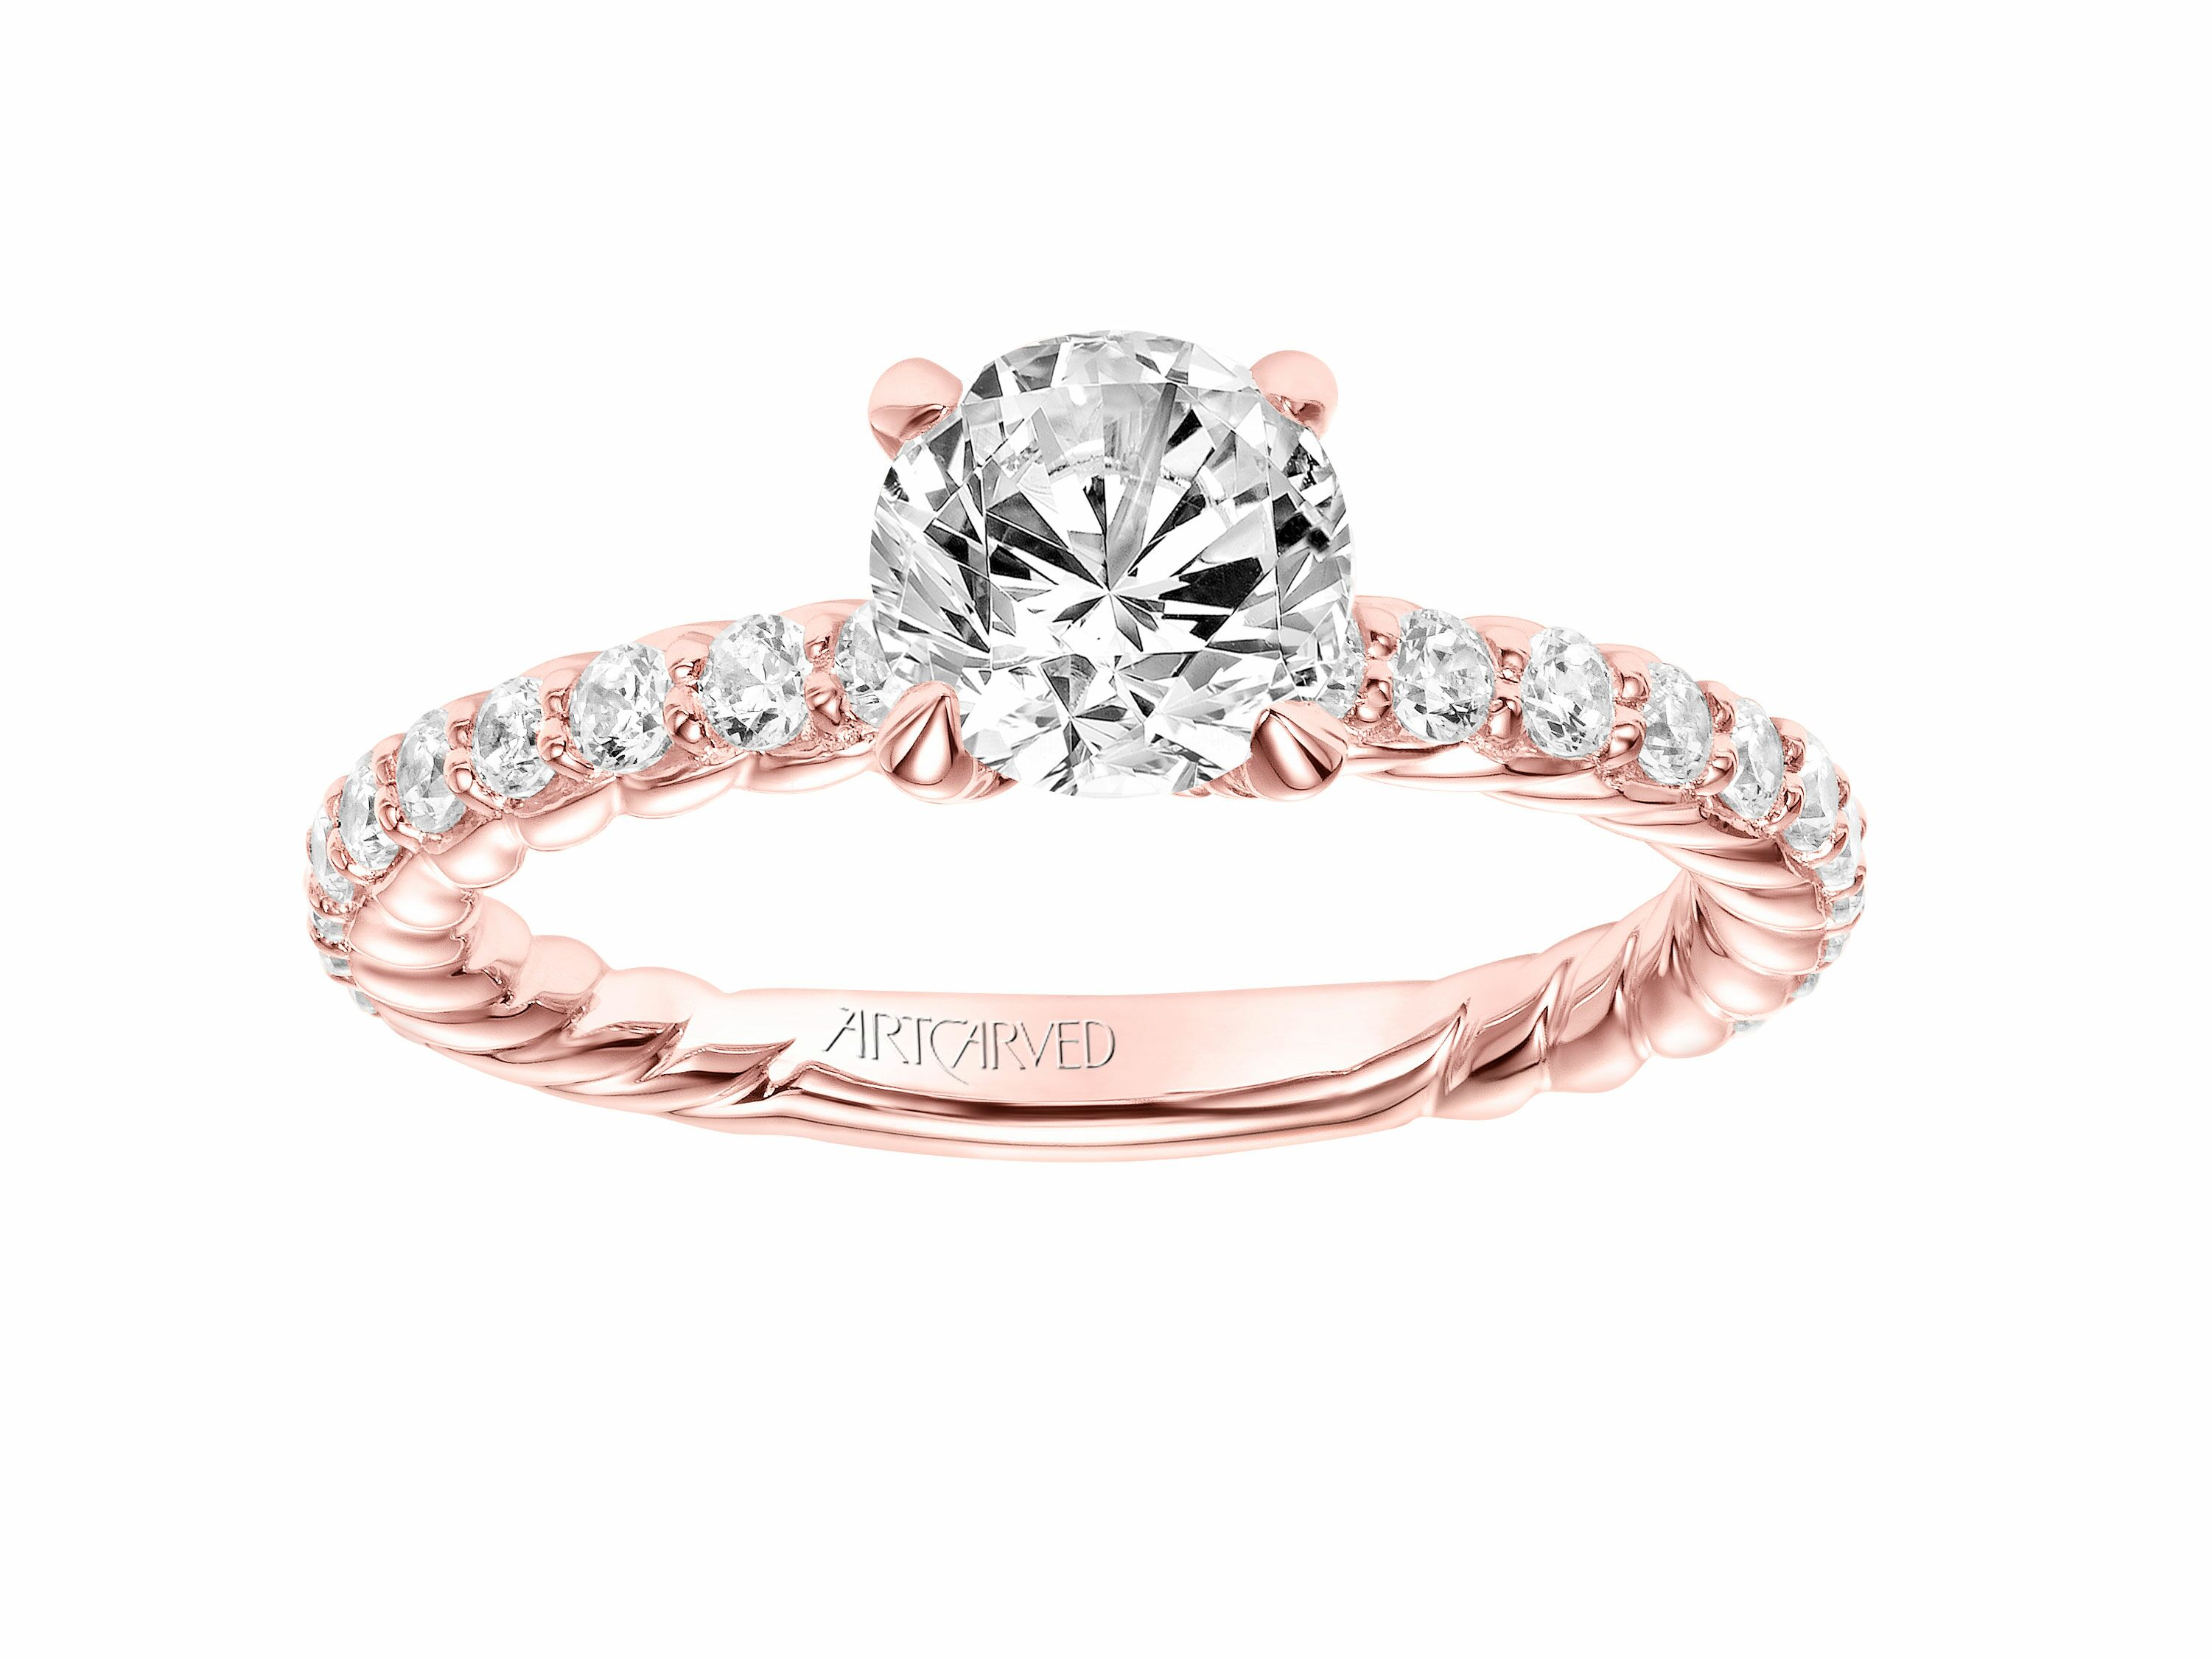 this enhance schwartz love sparkle multiplicity stones see you can colored to fire a son split s simply lorelei diamond side and sol hearts as with beyond from engagement ways rings shank stone wedding ring adding band on charles go your above